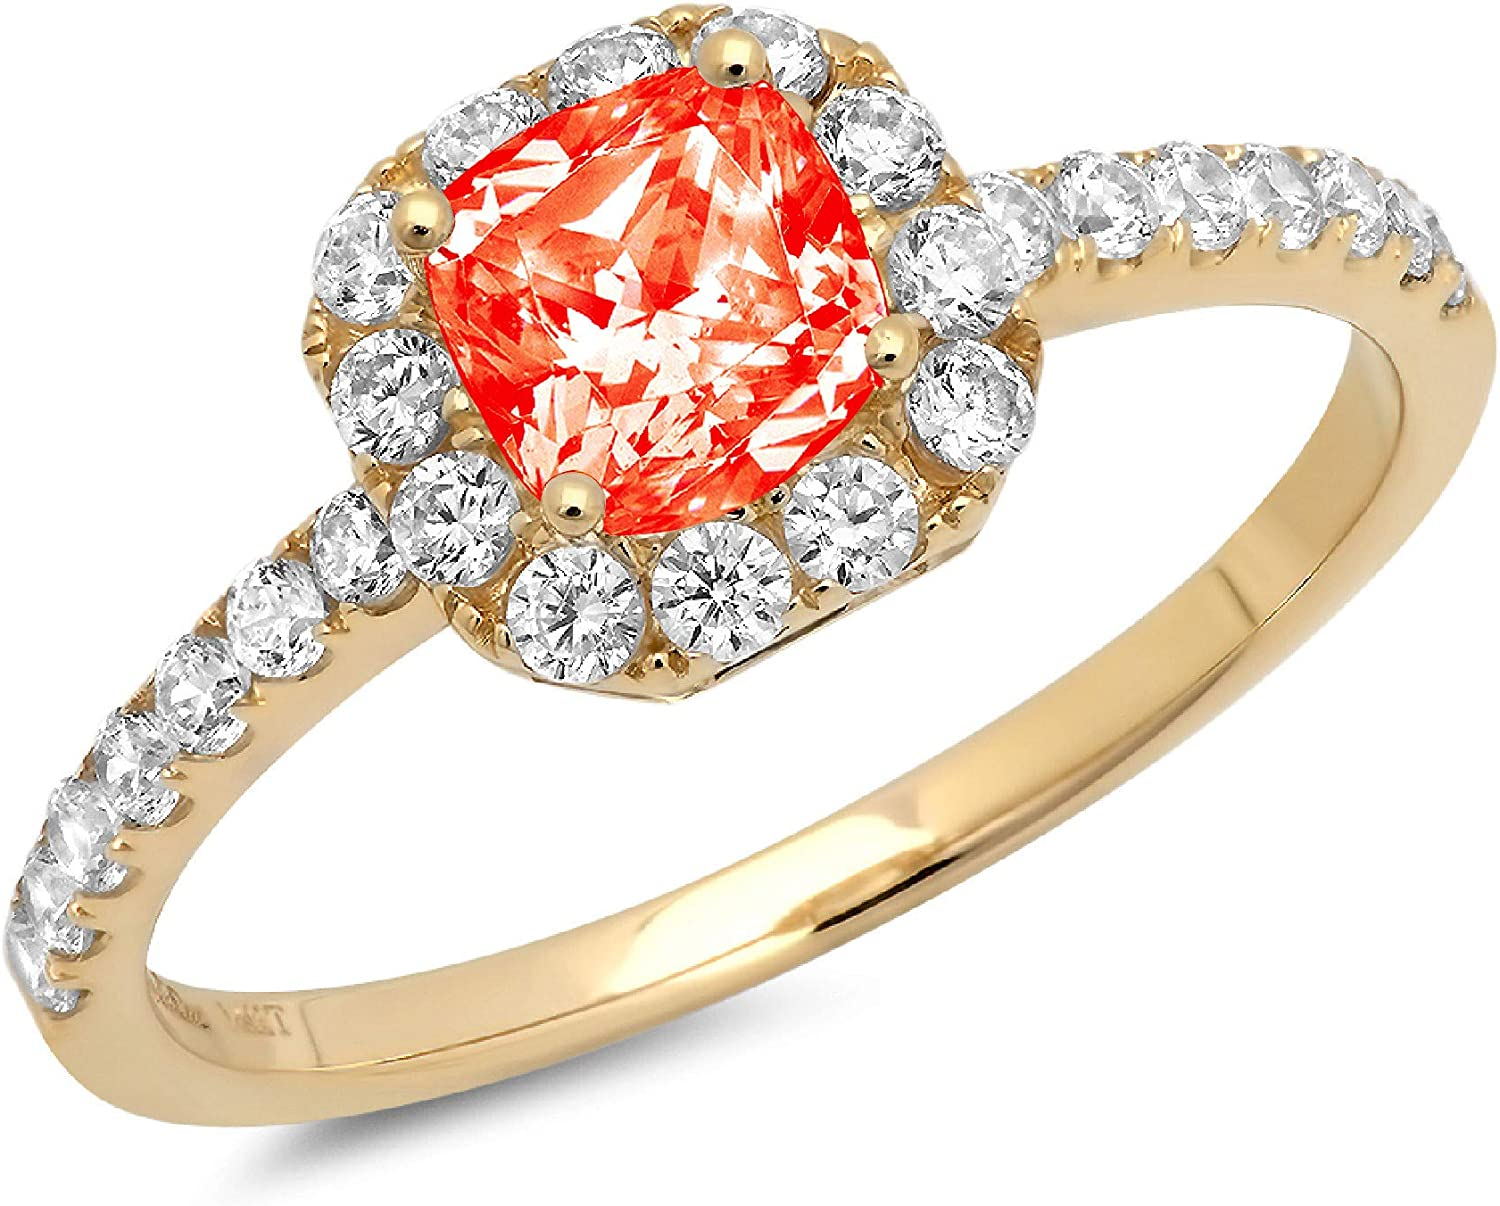 excellence Clara Pucci Recommendation 1.5 Brilliant Princess Accent Cut Solitaire Stunning